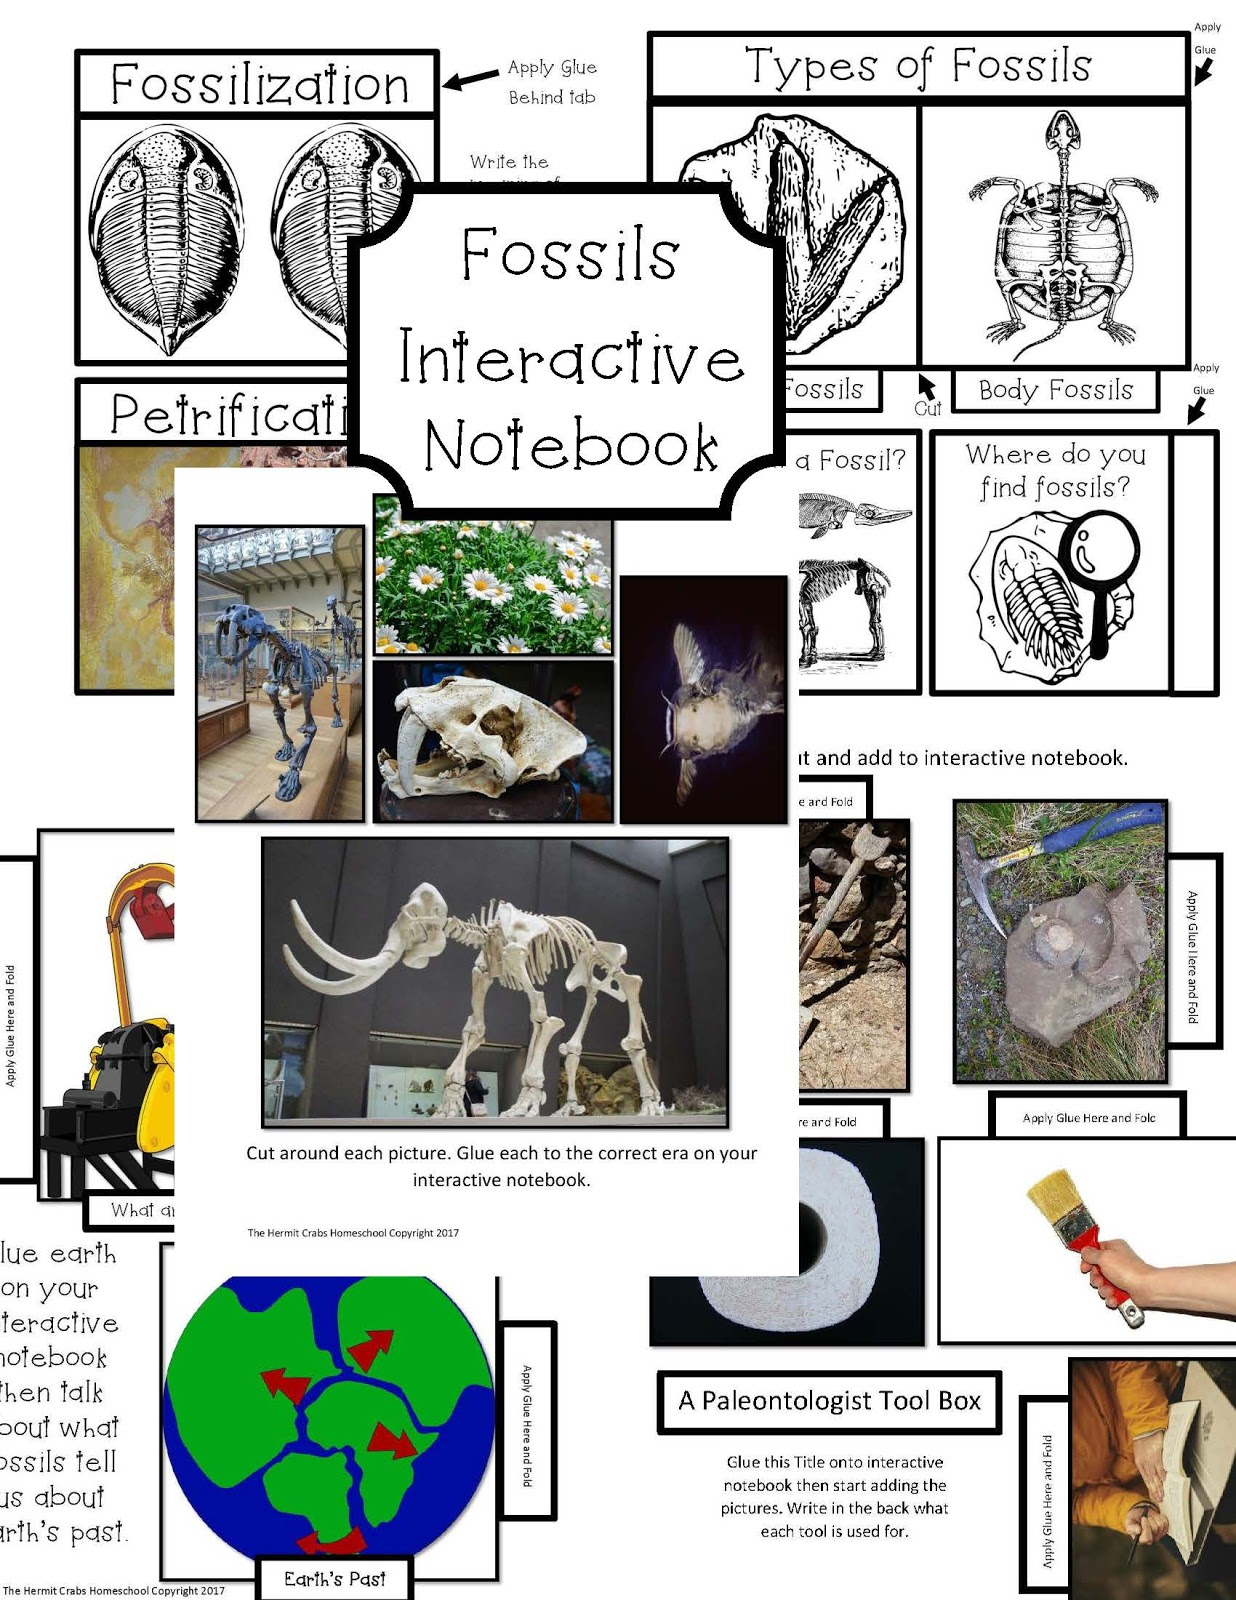 The Hermit Crabs Homeschool Fossils Unit Study